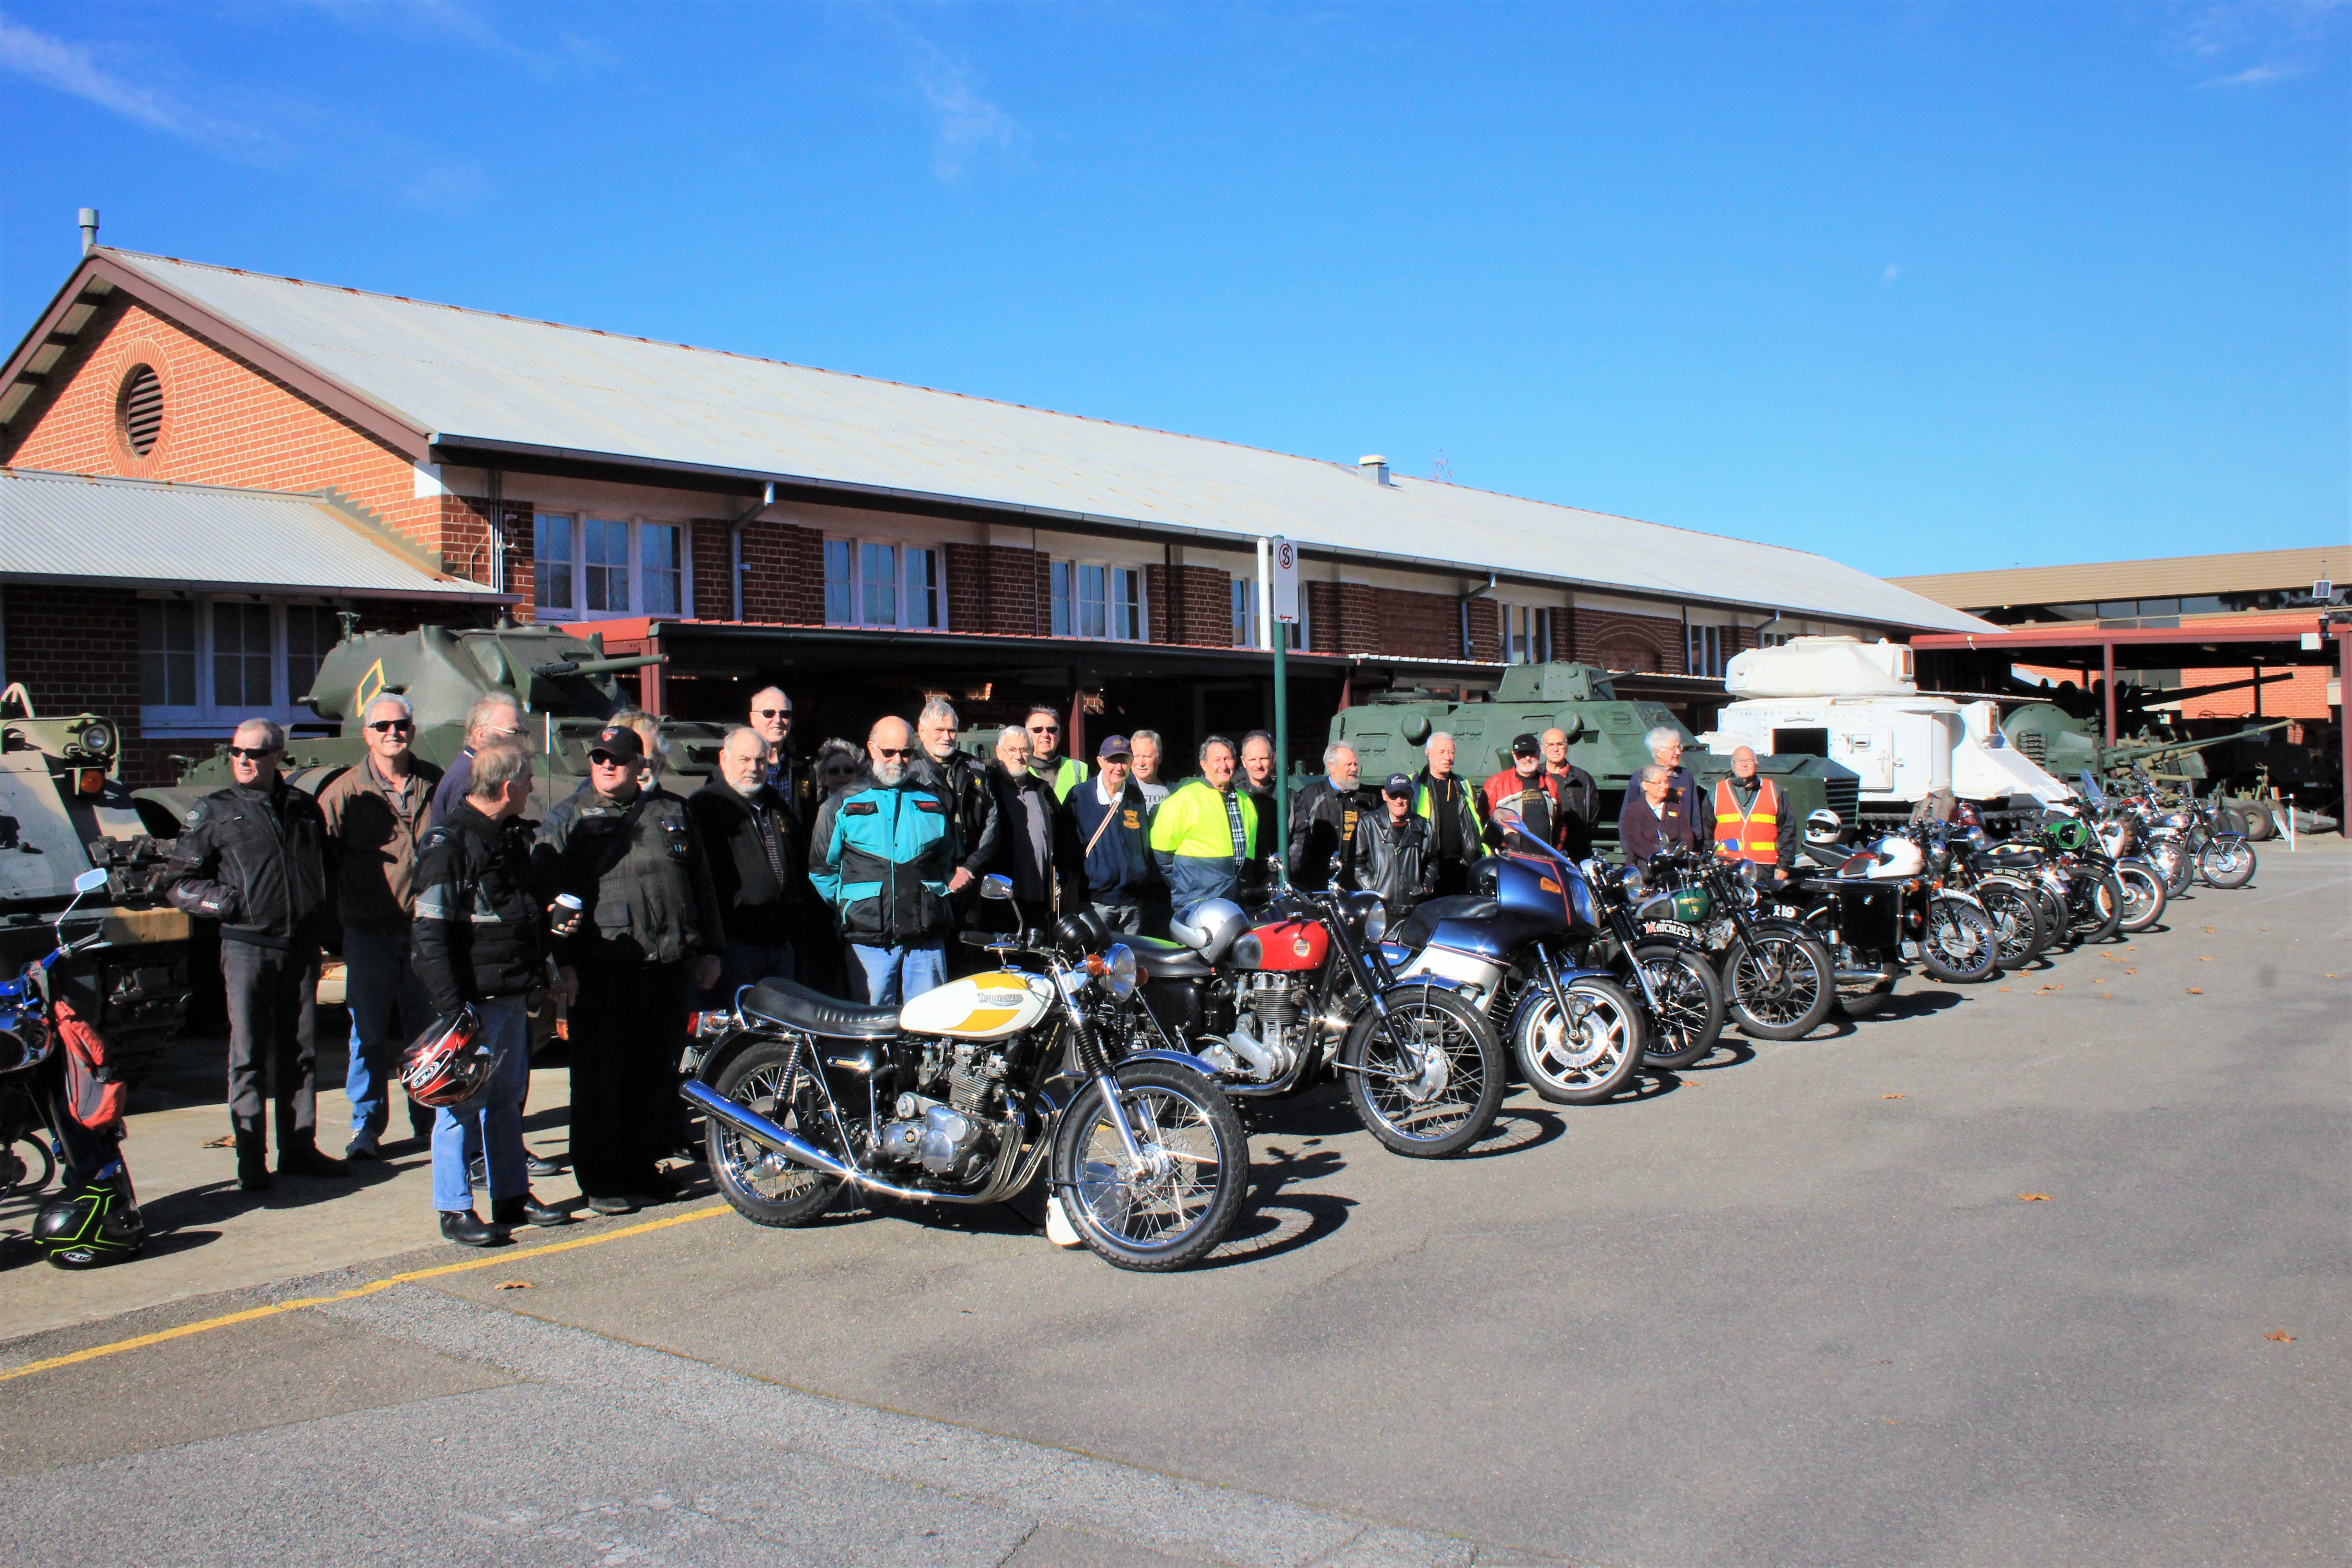 Veteran and Vintage Motor Cycle Club of South Australia